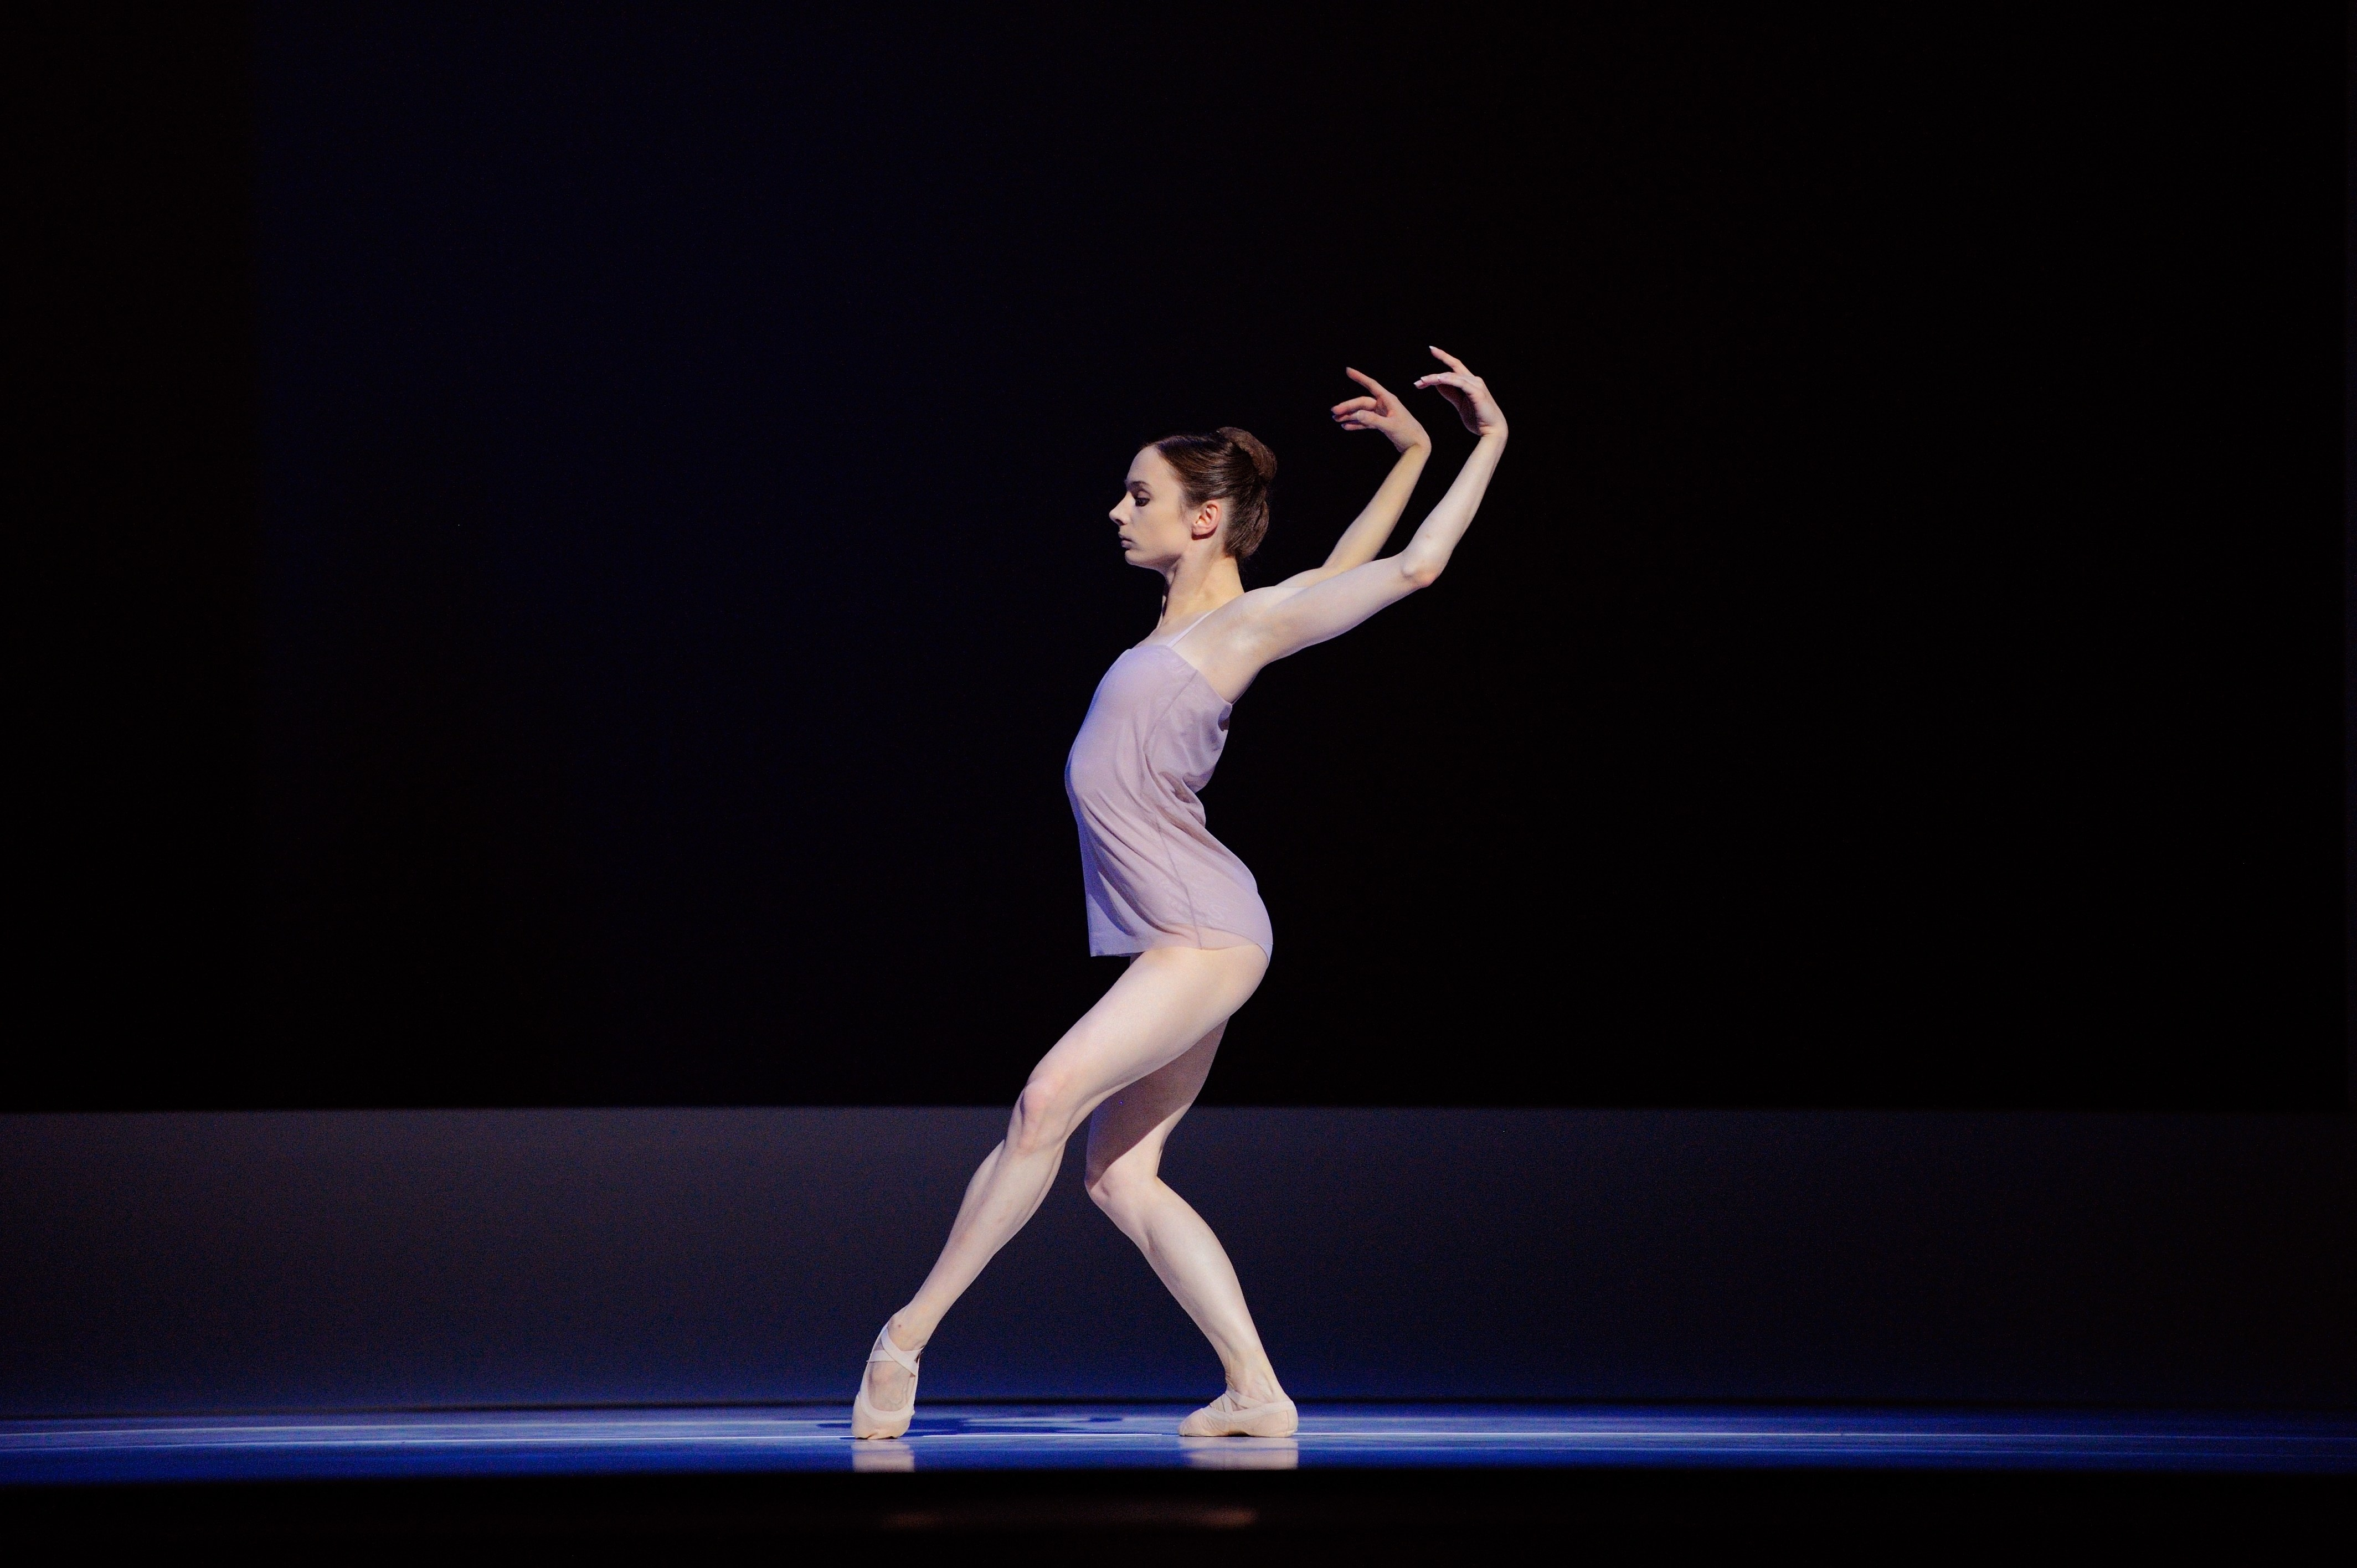 Maria Kochetkova on Freelance Life, Her New Show at the Joyce Theater and More